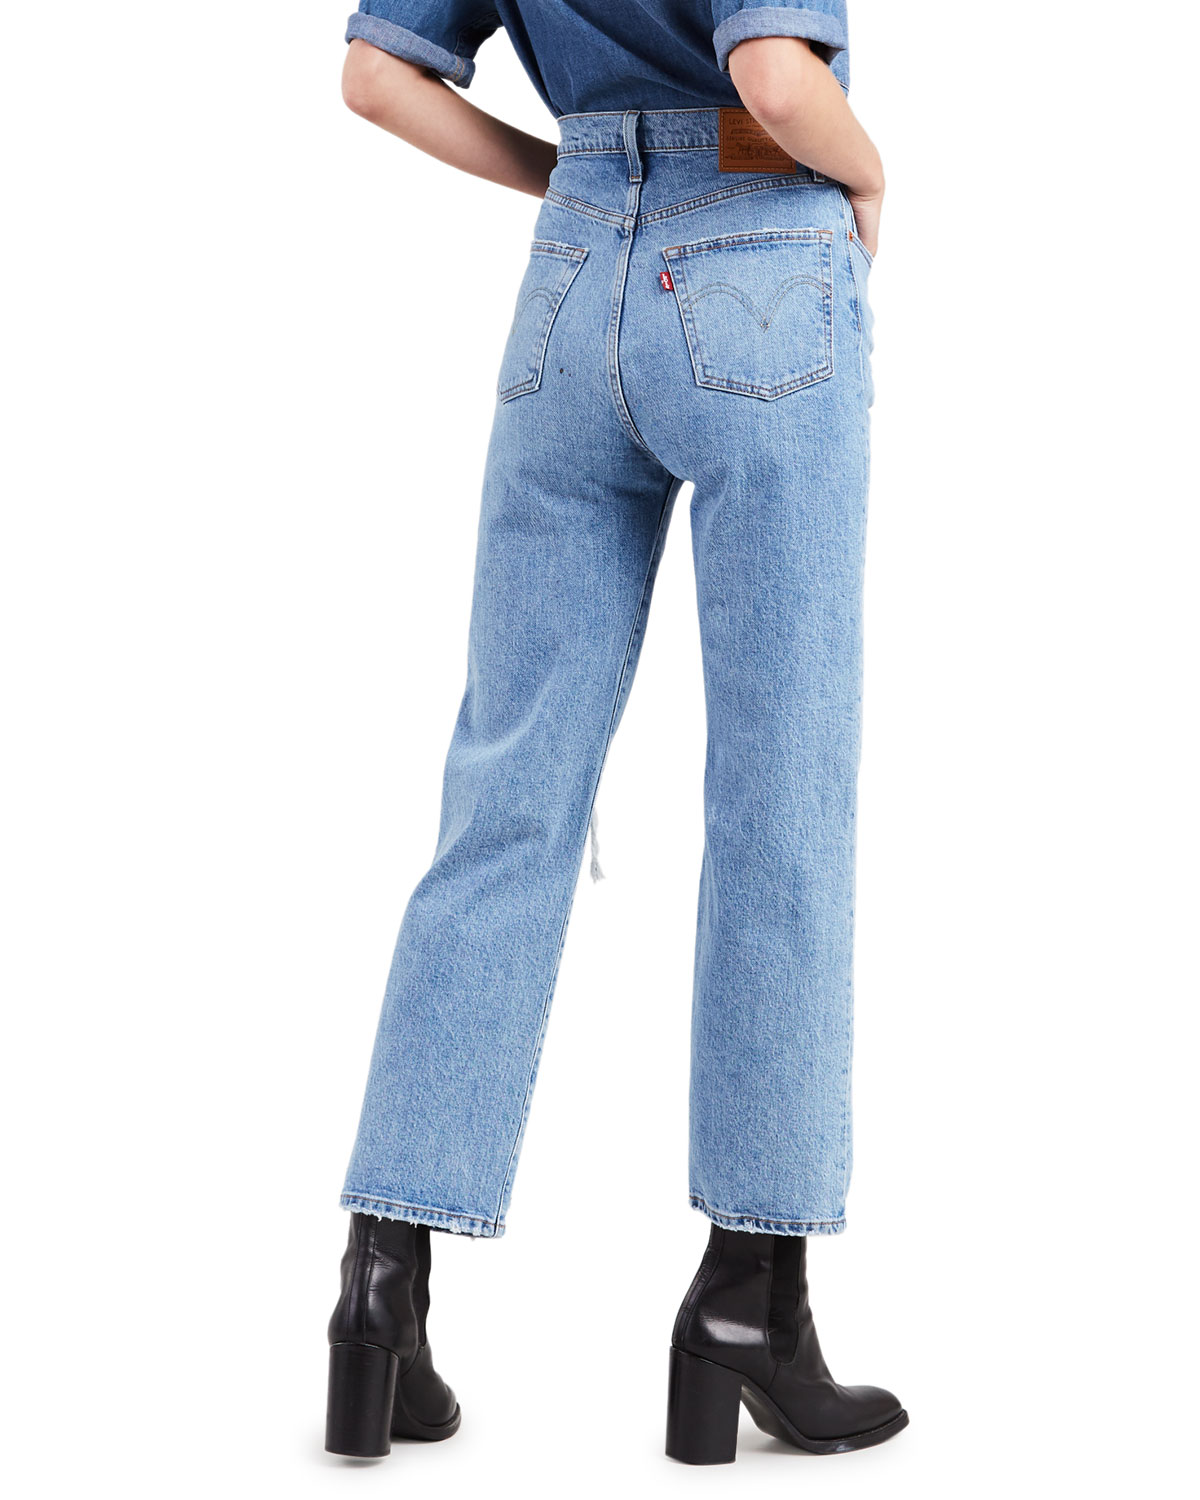 Levi's Jeans Ribcage High-Rise Distressed Straight-Leg Jeans, HATERS GONNA HATE